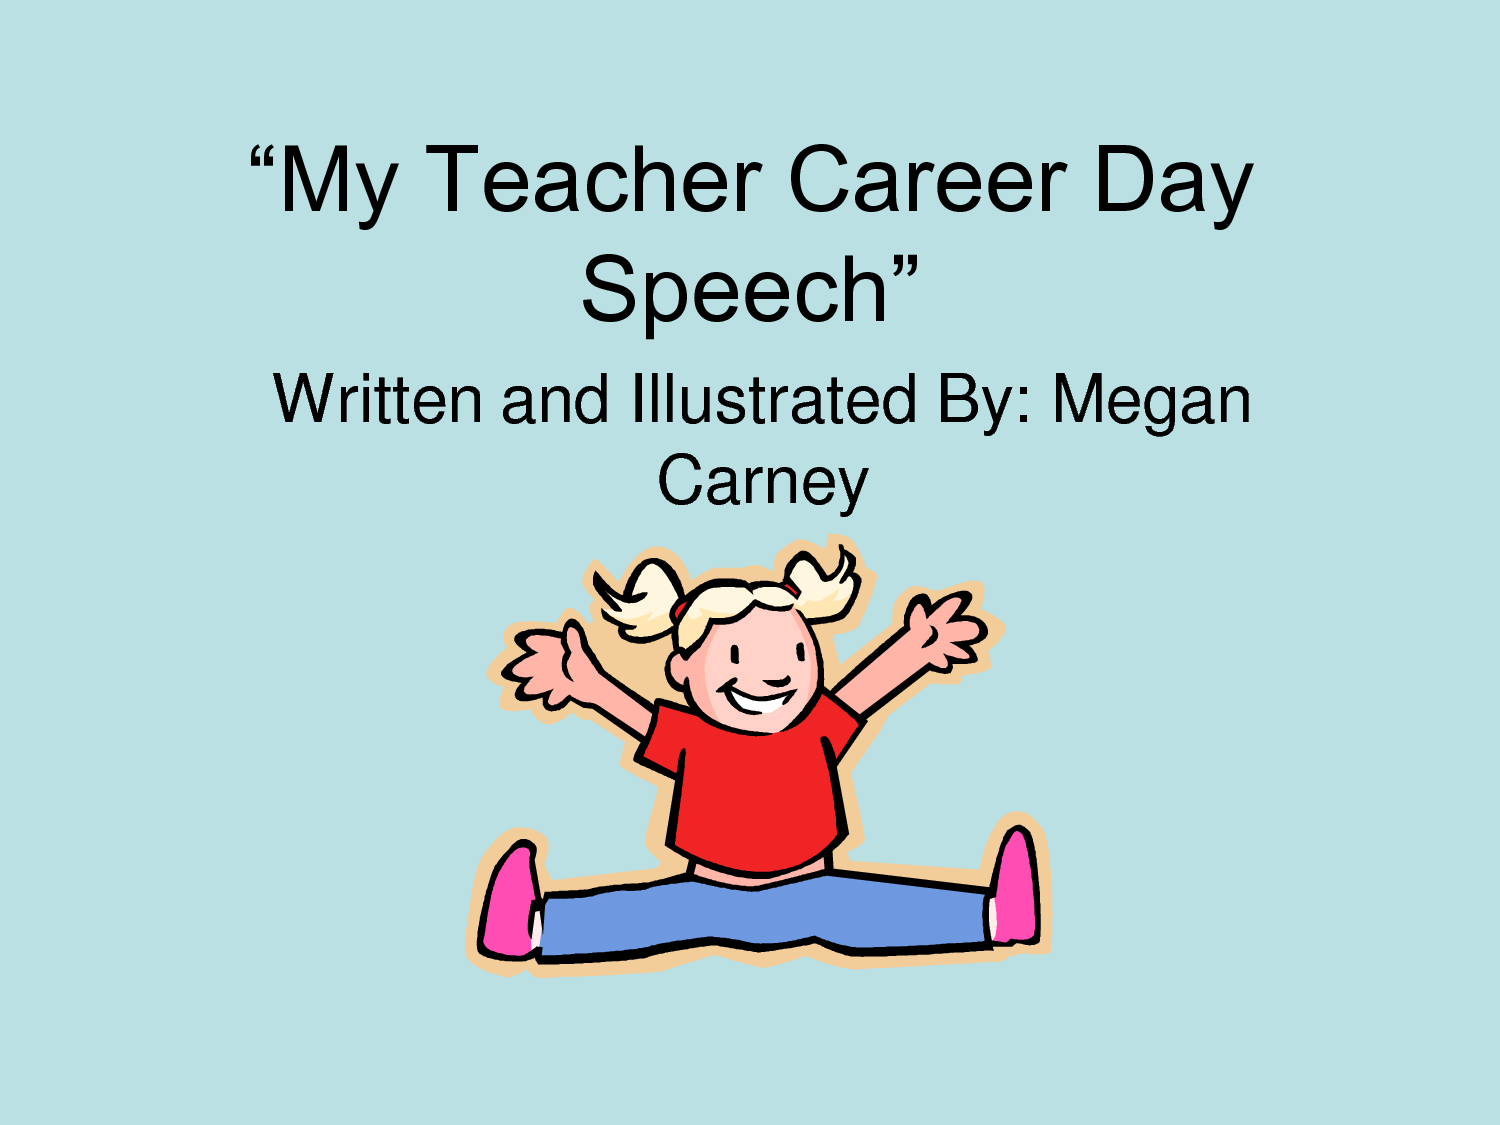 Special Speech For Teachers Day For Kindergarten Children Students Kids Images Pictures Pics Photos 2015 Teachers Day Speech Happy Teachers Day Teachers Day